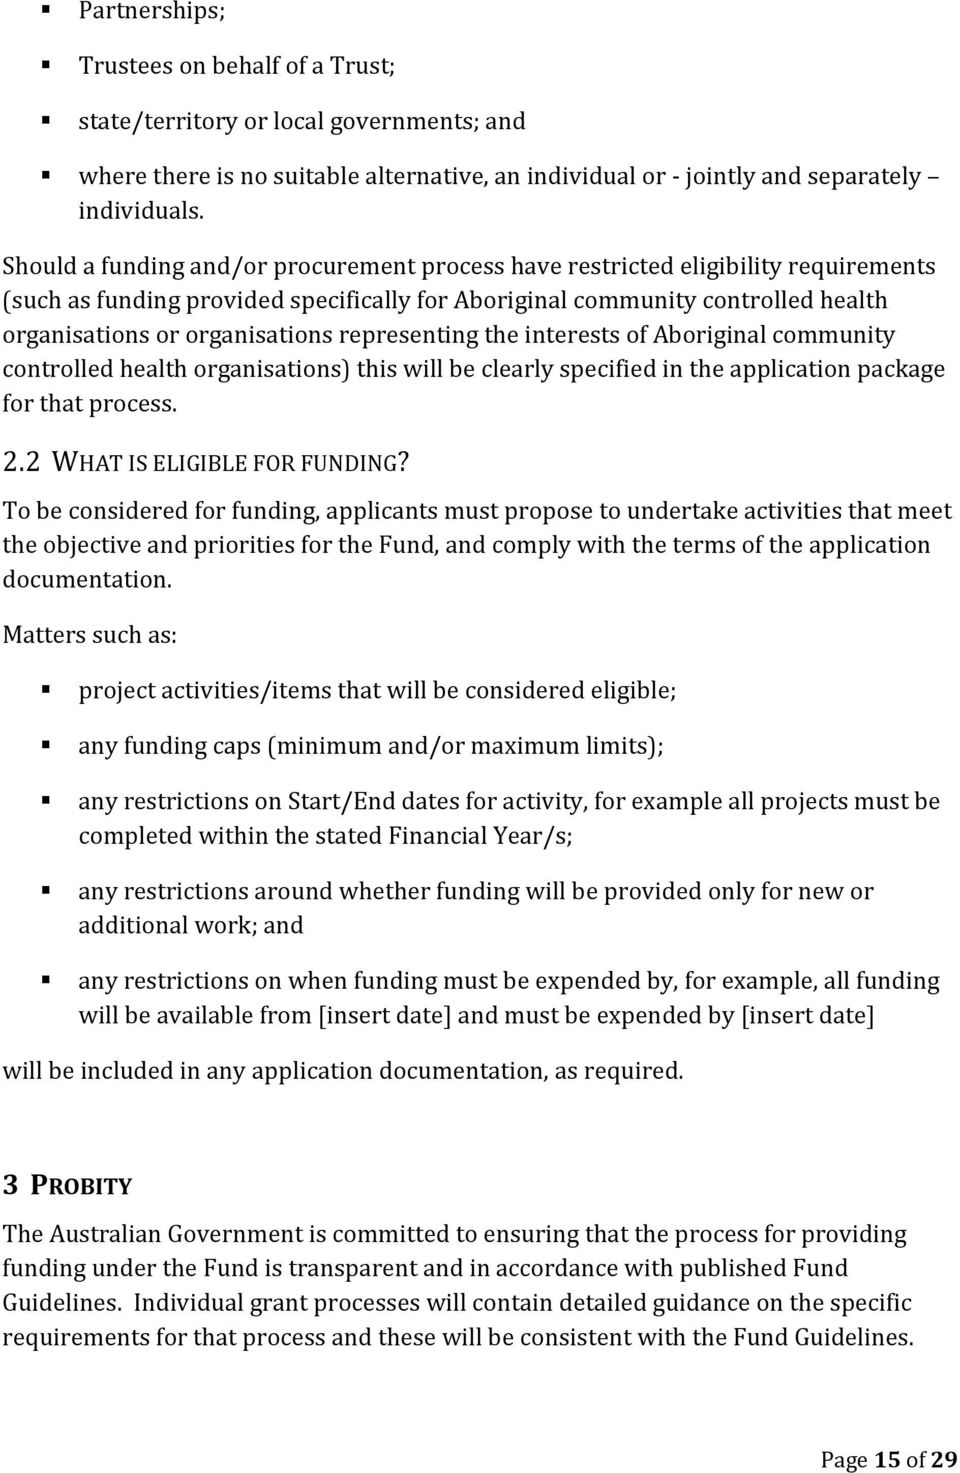 representing the interests of Aboriginal community controlled health organisations) this will be clearly specified in the application package for that process. 2.2 WHAT IS ELIGIBLE FOR FUNDING?